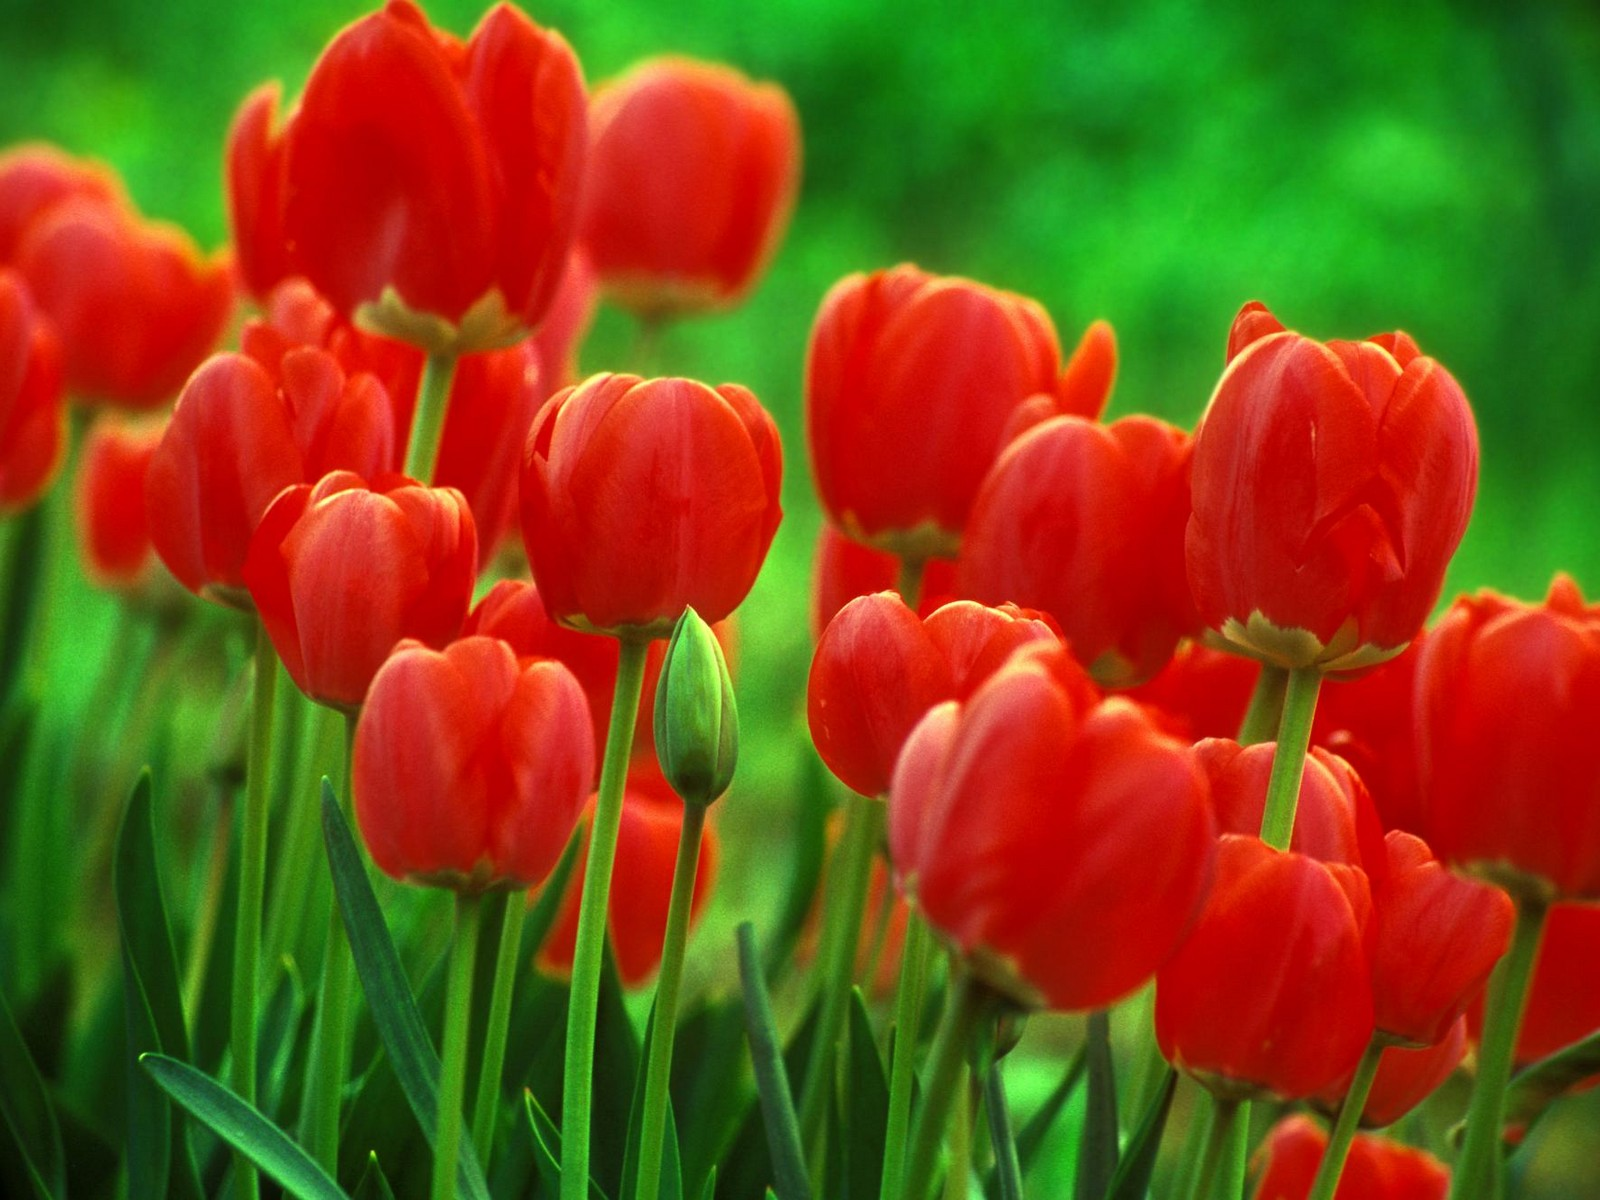 Desktop Wallpaper · Gallery · Nature Tulip flower bulbs